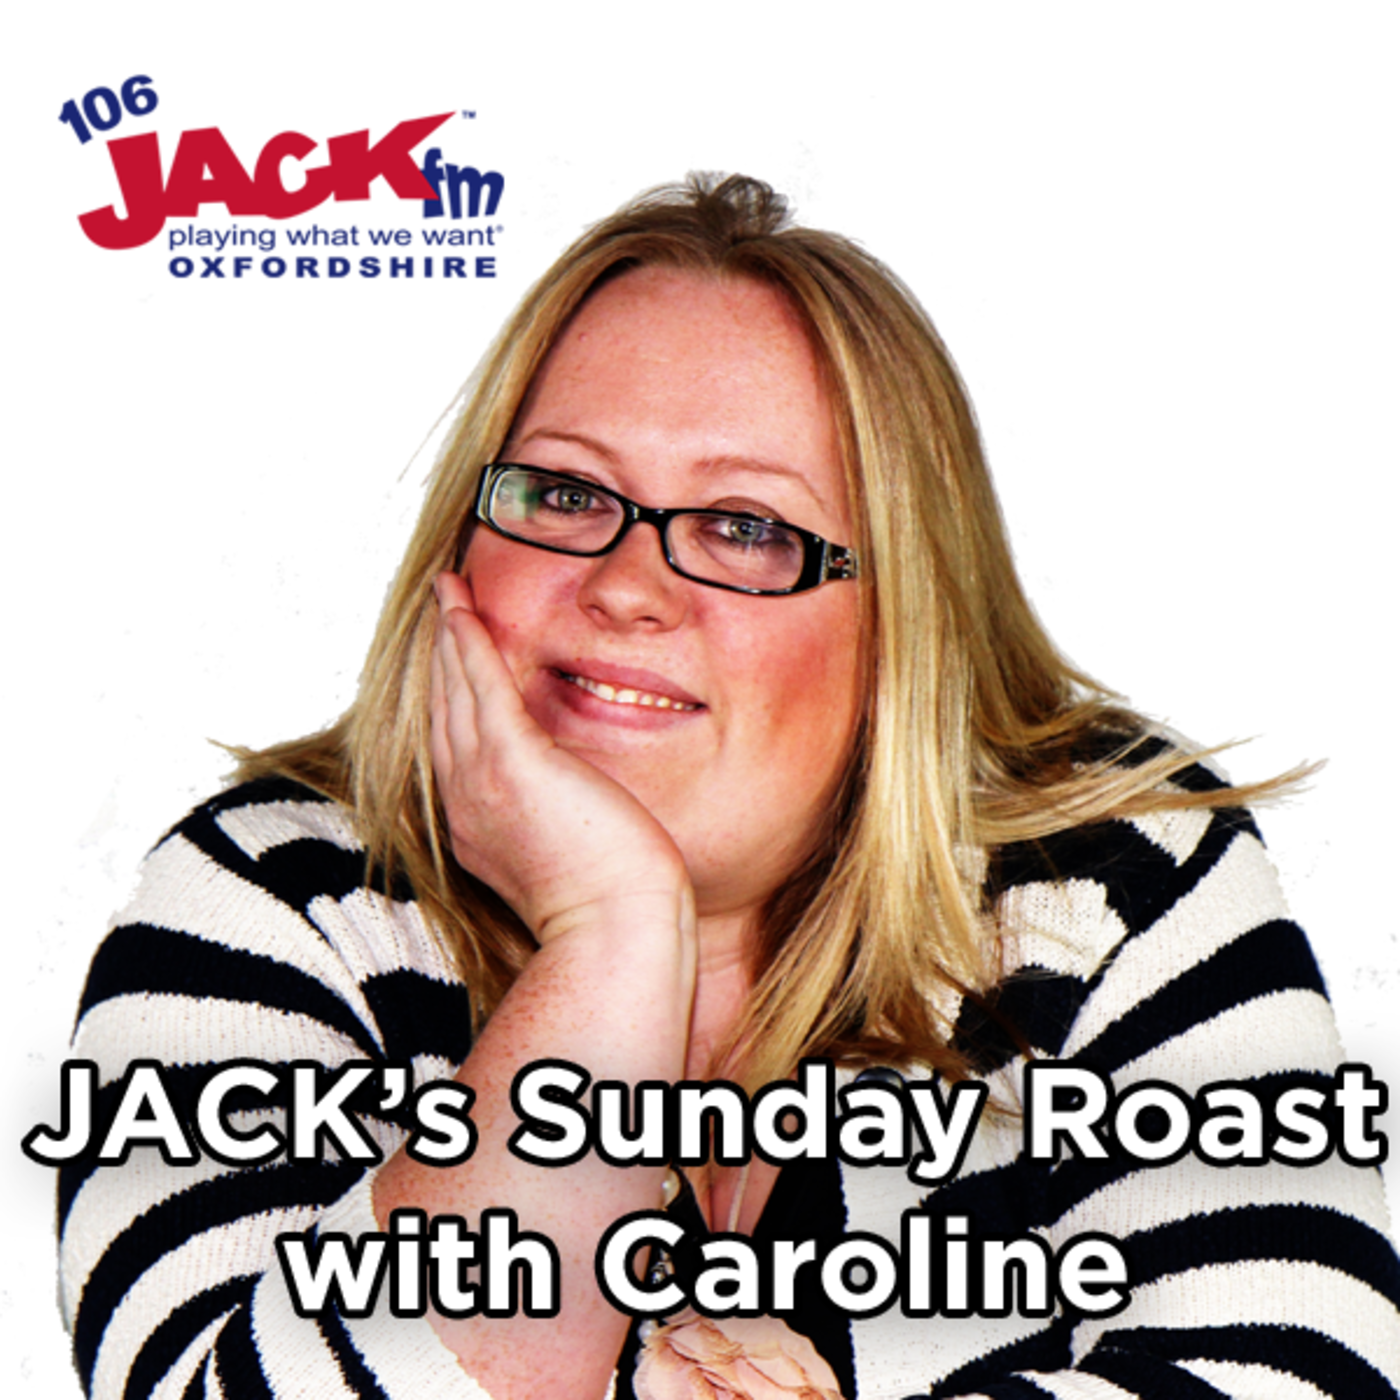 JACK's Sunday Roast with Caroline